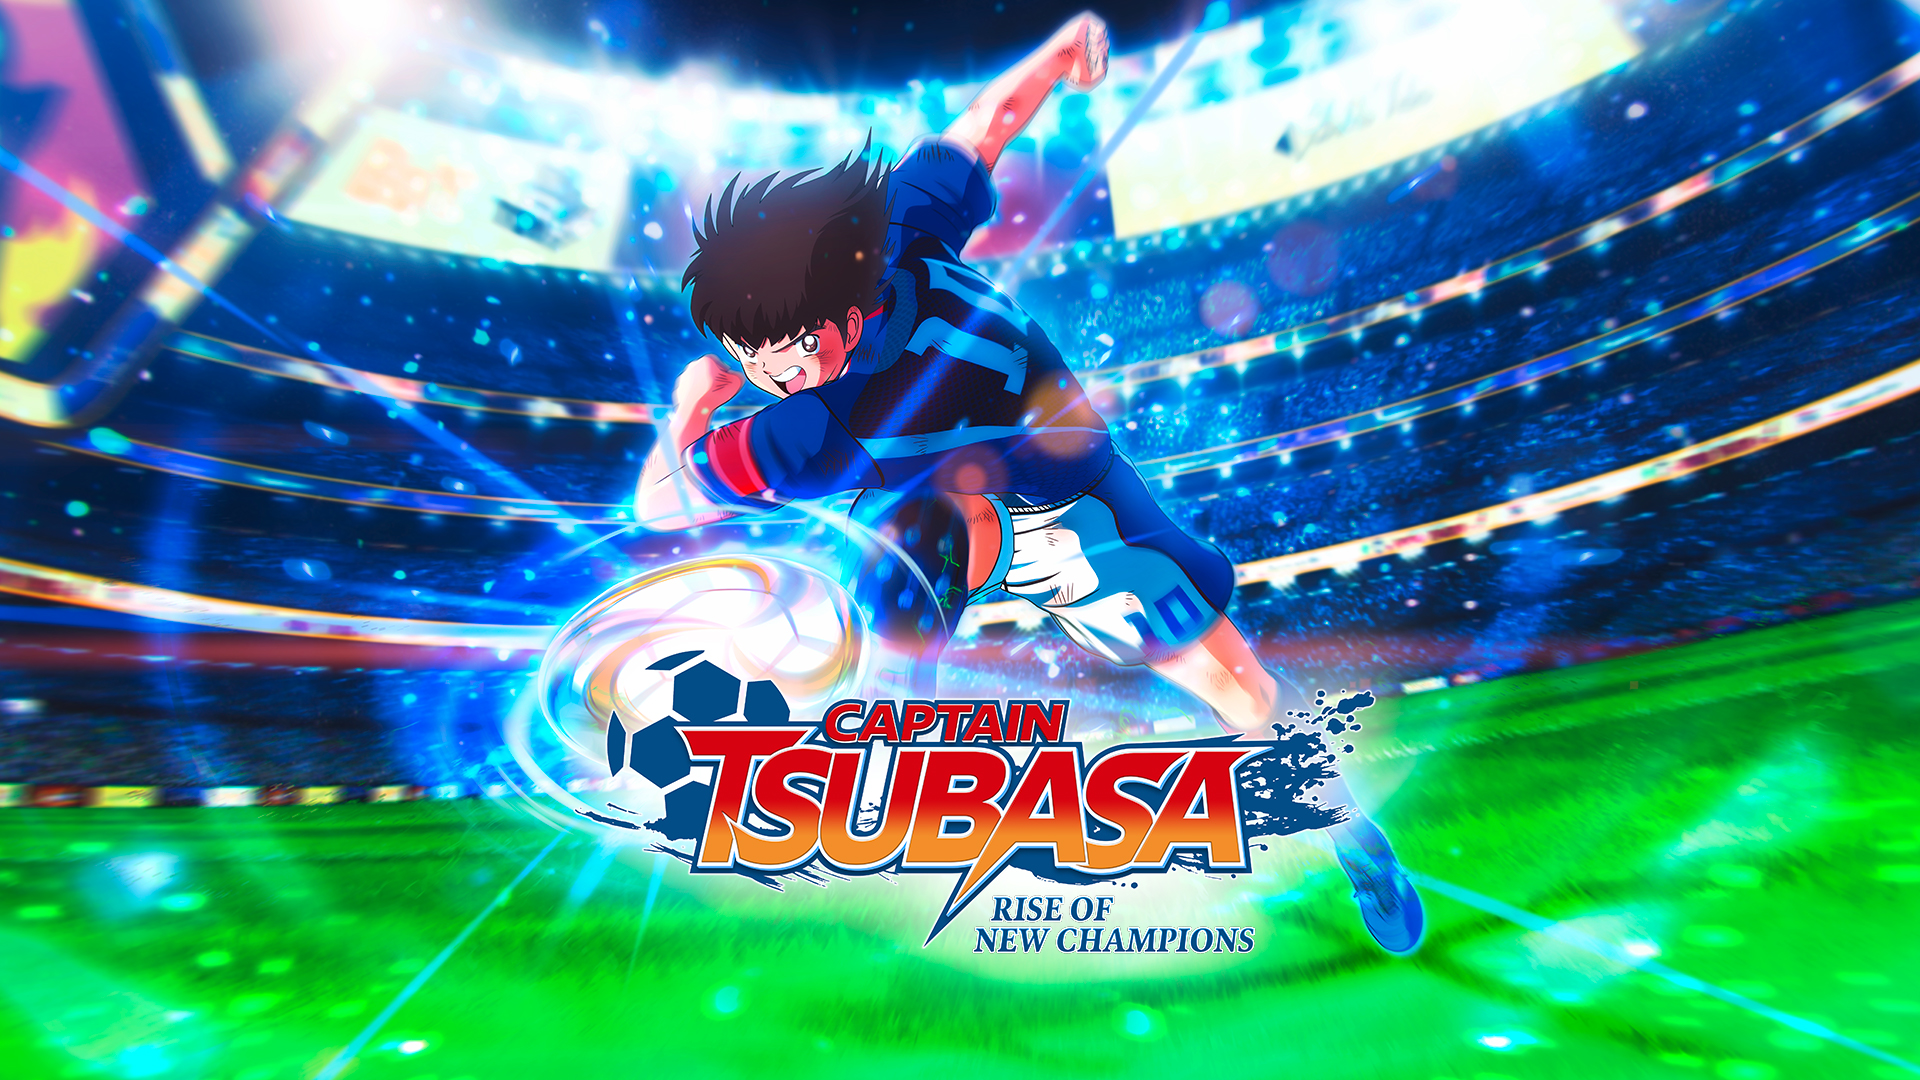 captain tsubasa rise of new champions month 1 edition switch hero